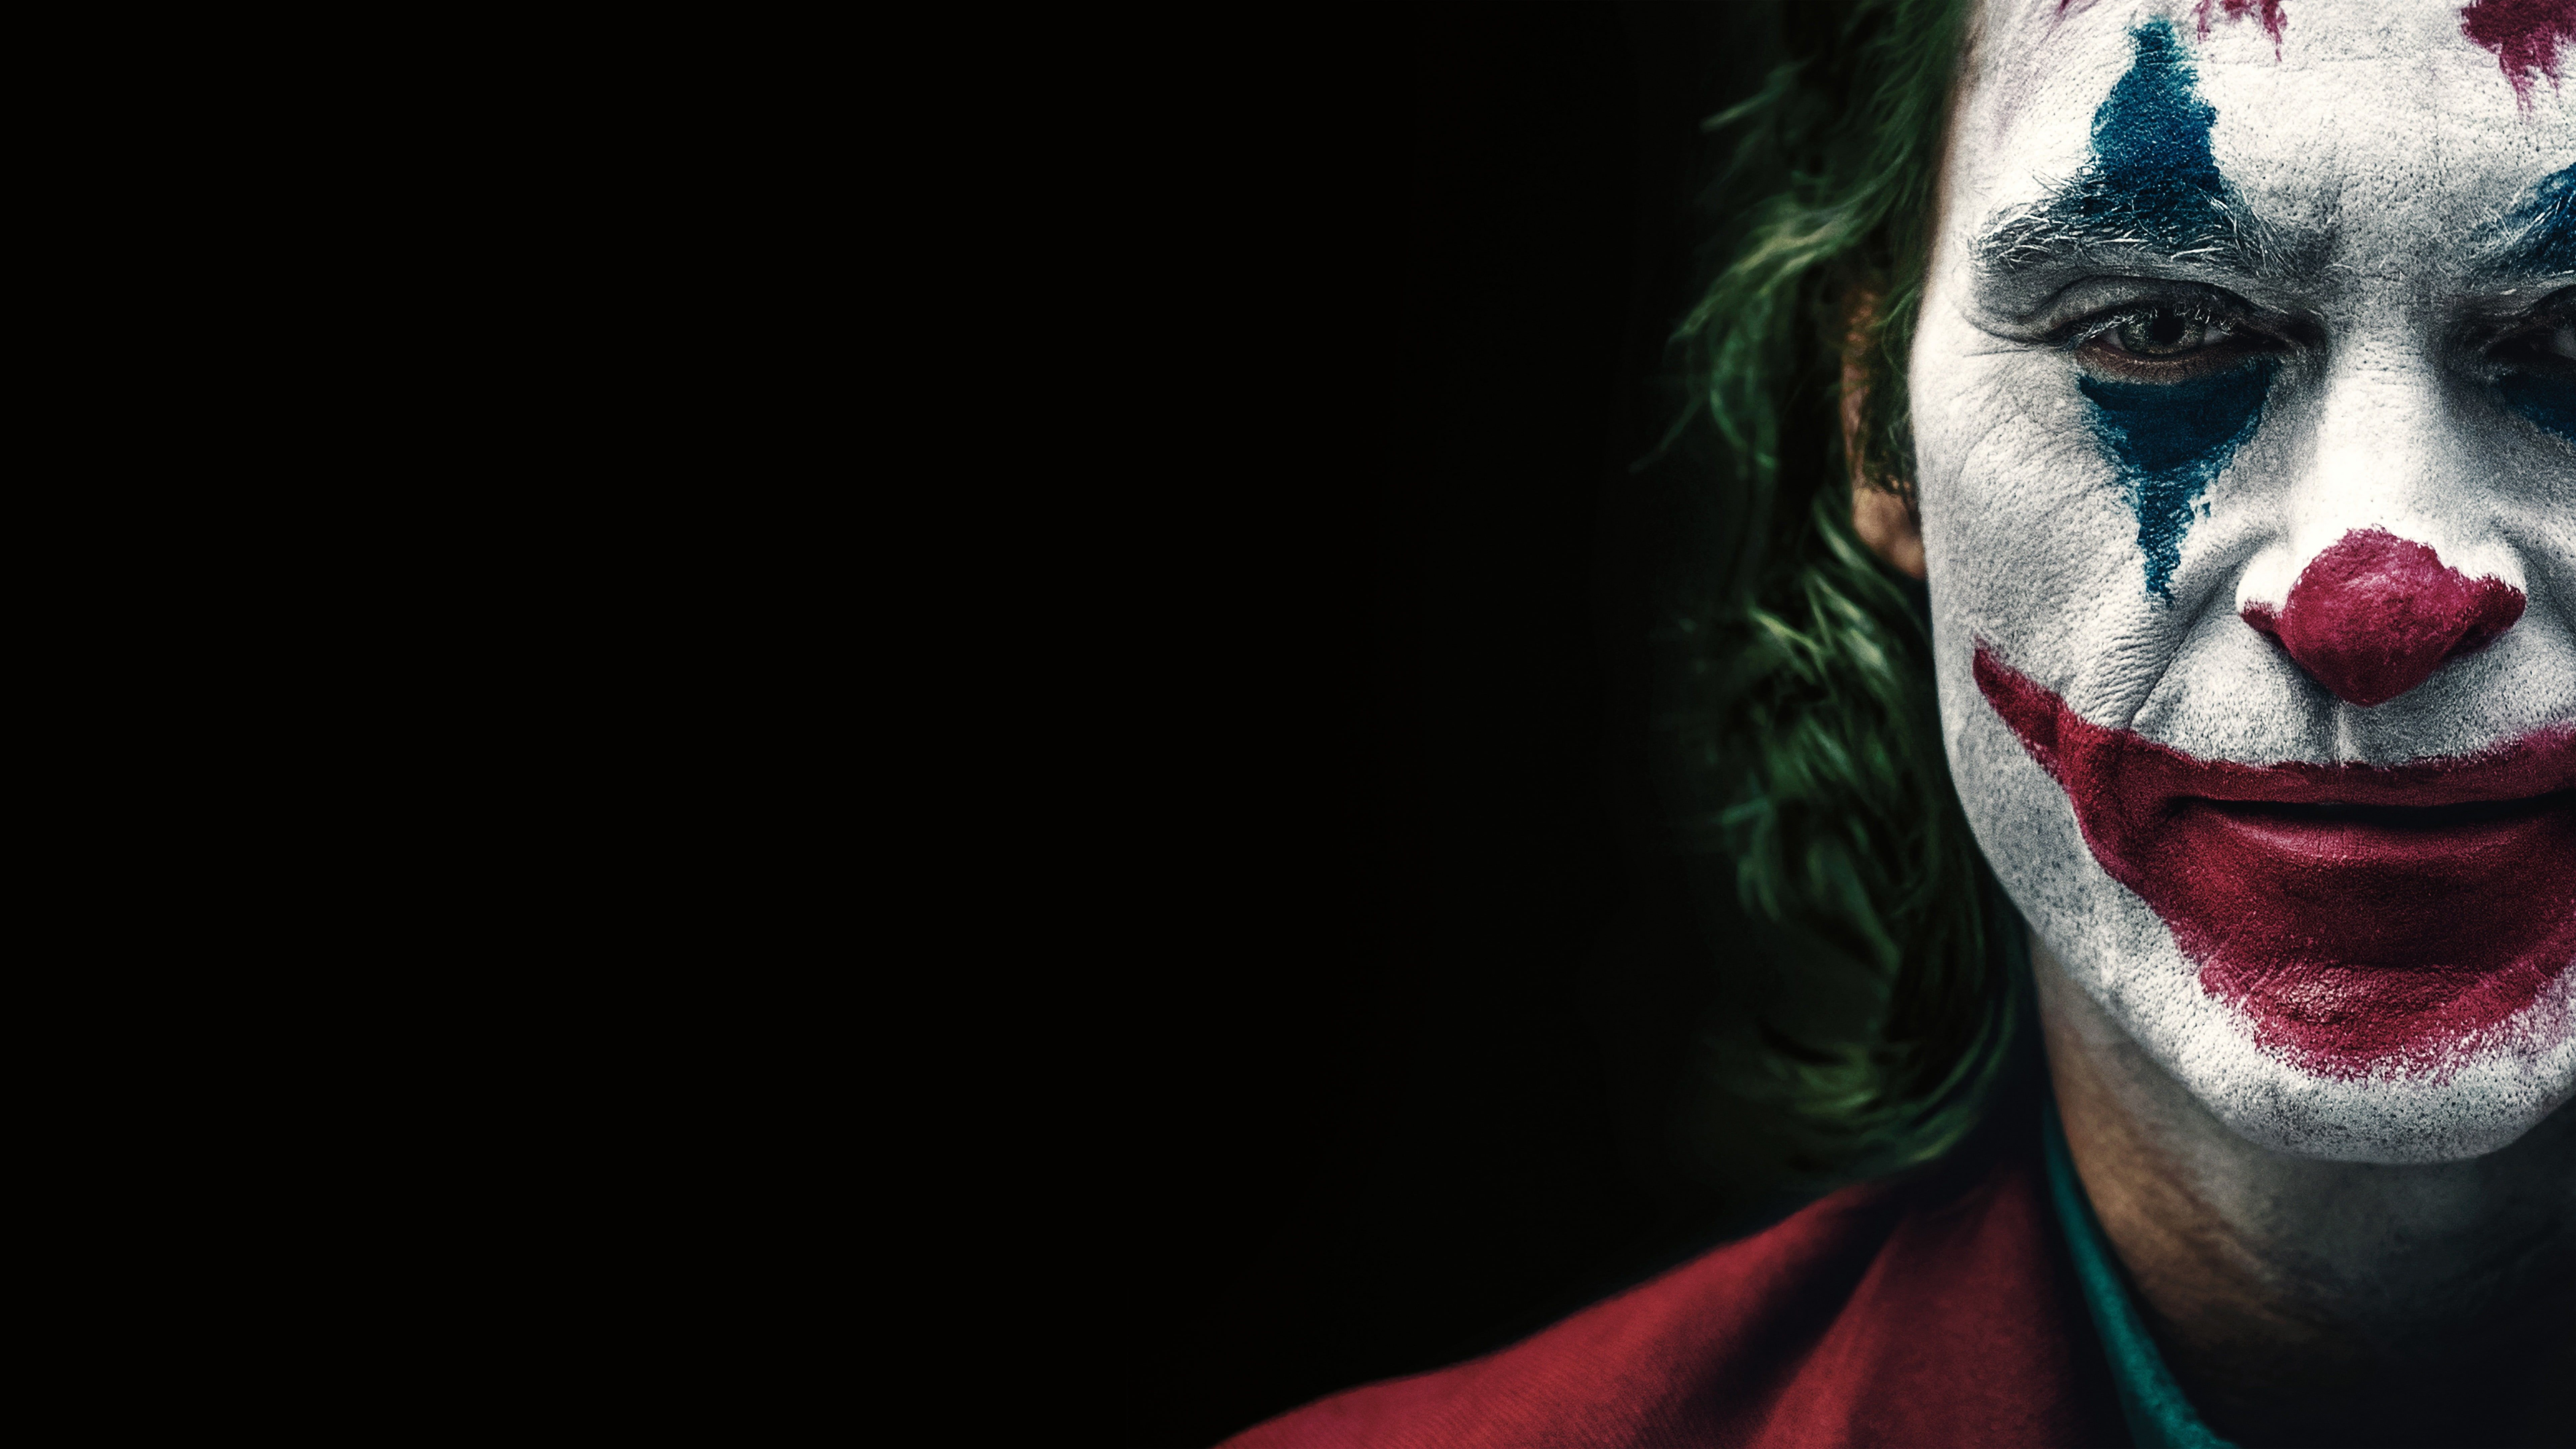 Joaquin Phoenix Joker Batman Joker 2019 Movie dark DC 7680x4320